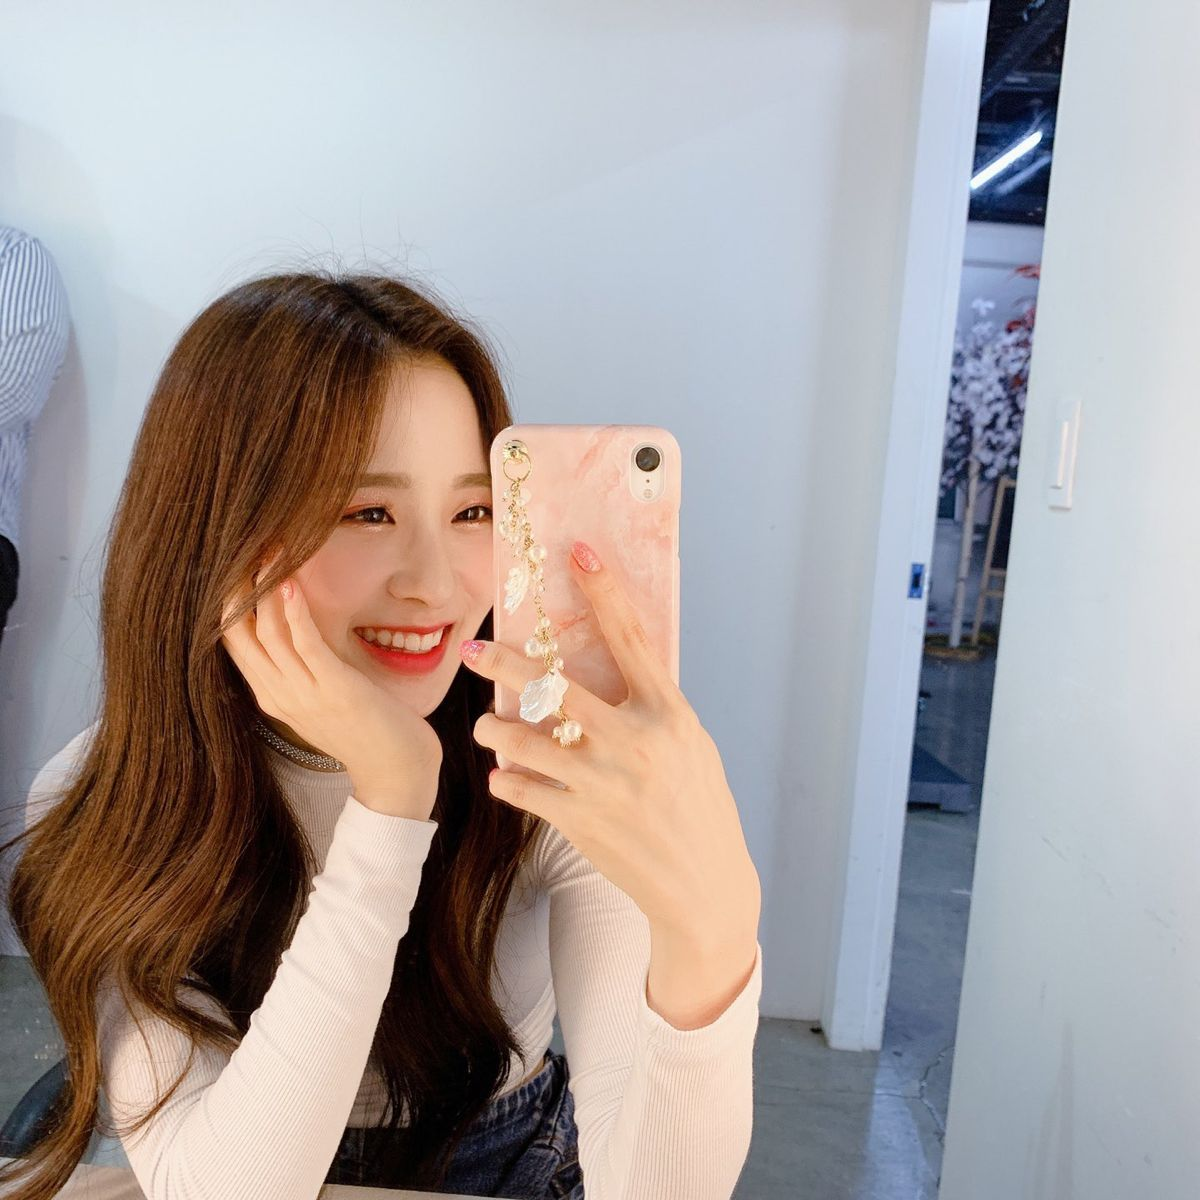 Jian Lunarsolar Kpop Girl Groups Mirror Selfie Girl